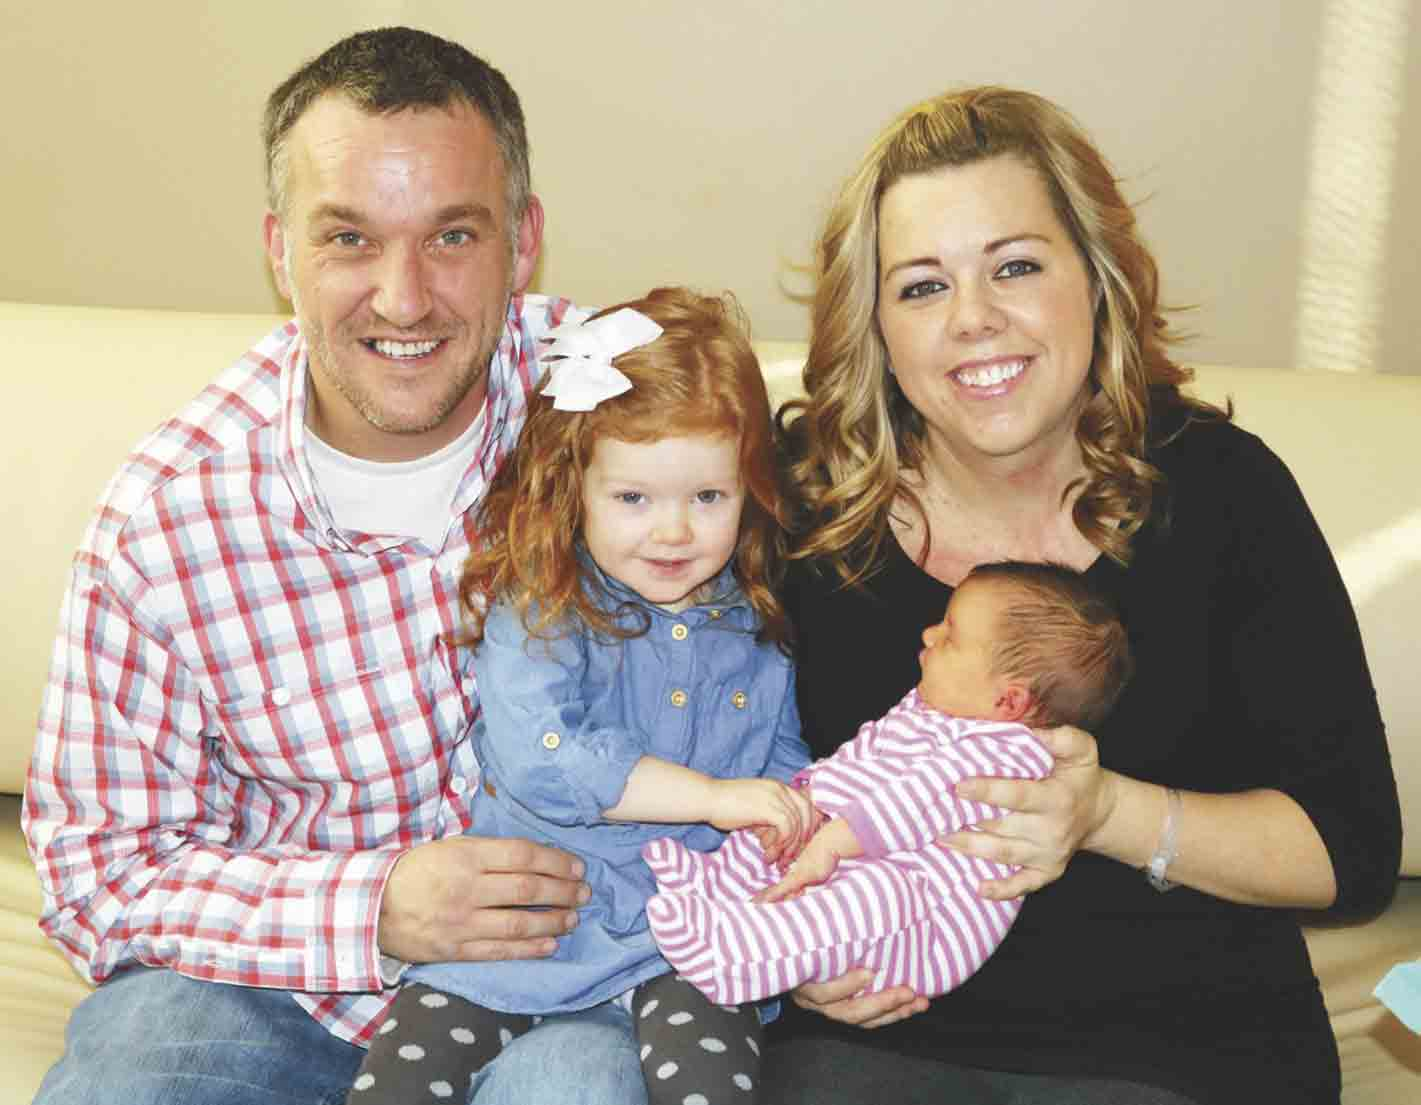 Hadley Jewel Gronna was the first baby born in the new year at Winneshiek Medical Center in Decorah. Arriving at 2:41 p.m. Monday, Jan. 2, Hadley weighed 9 lbs. 1 oz. and measured 21 inches. Welcoming her into the world were (l-r) dad Ryan, big sister Maya, and mom Laura Gronna of Decorah...